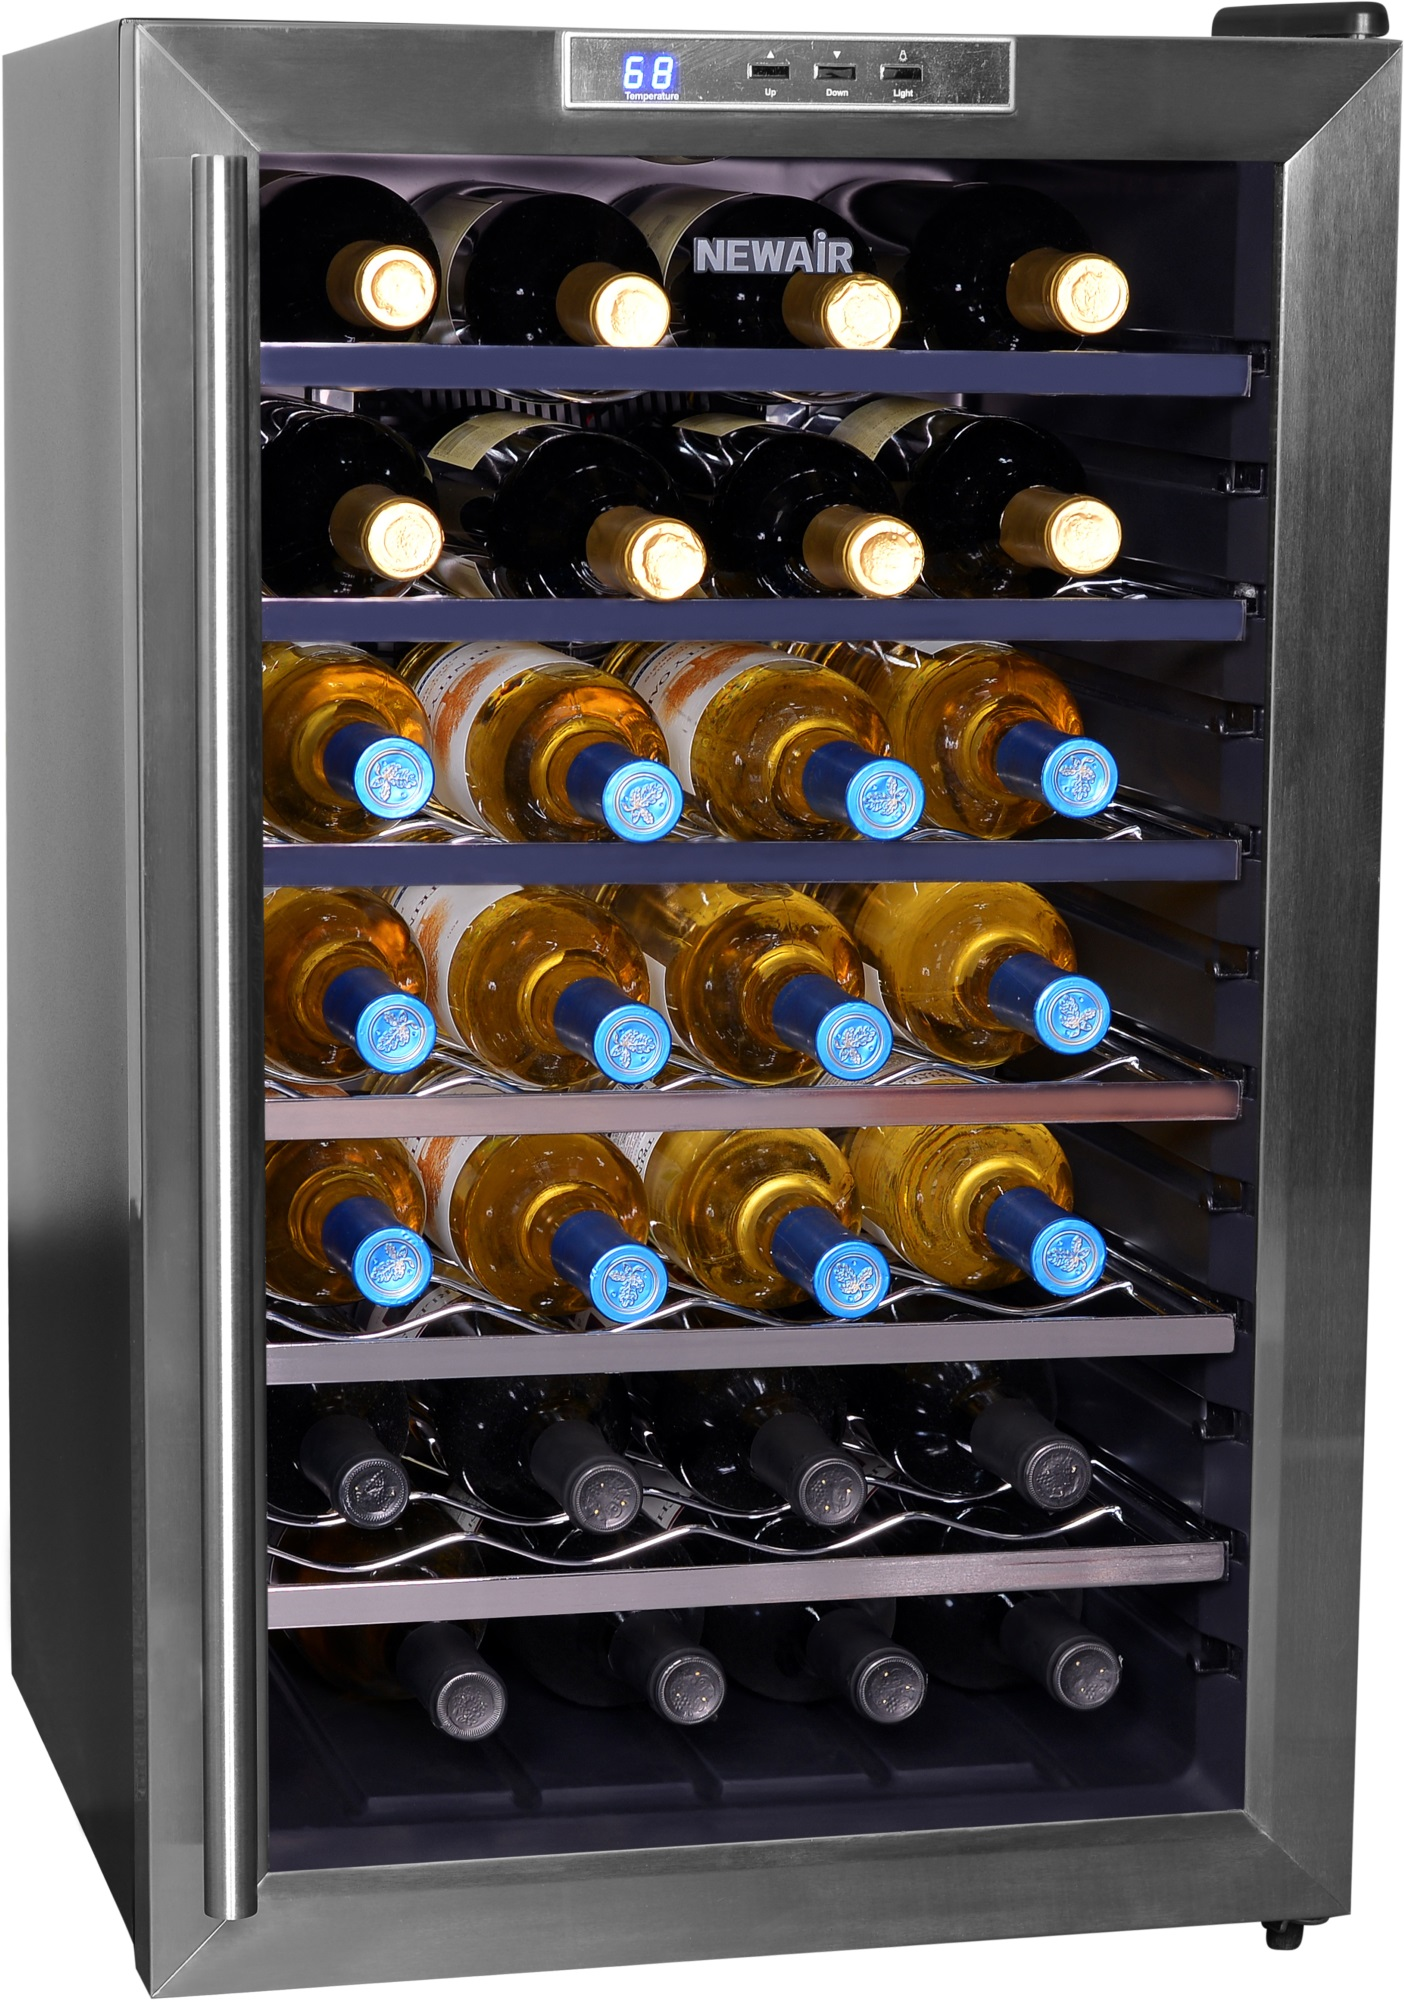 NewAir AW-281E 28-Bottle Thermoelectric Wine Refrigerator, Stainless Steel  and Black - Walmart.com